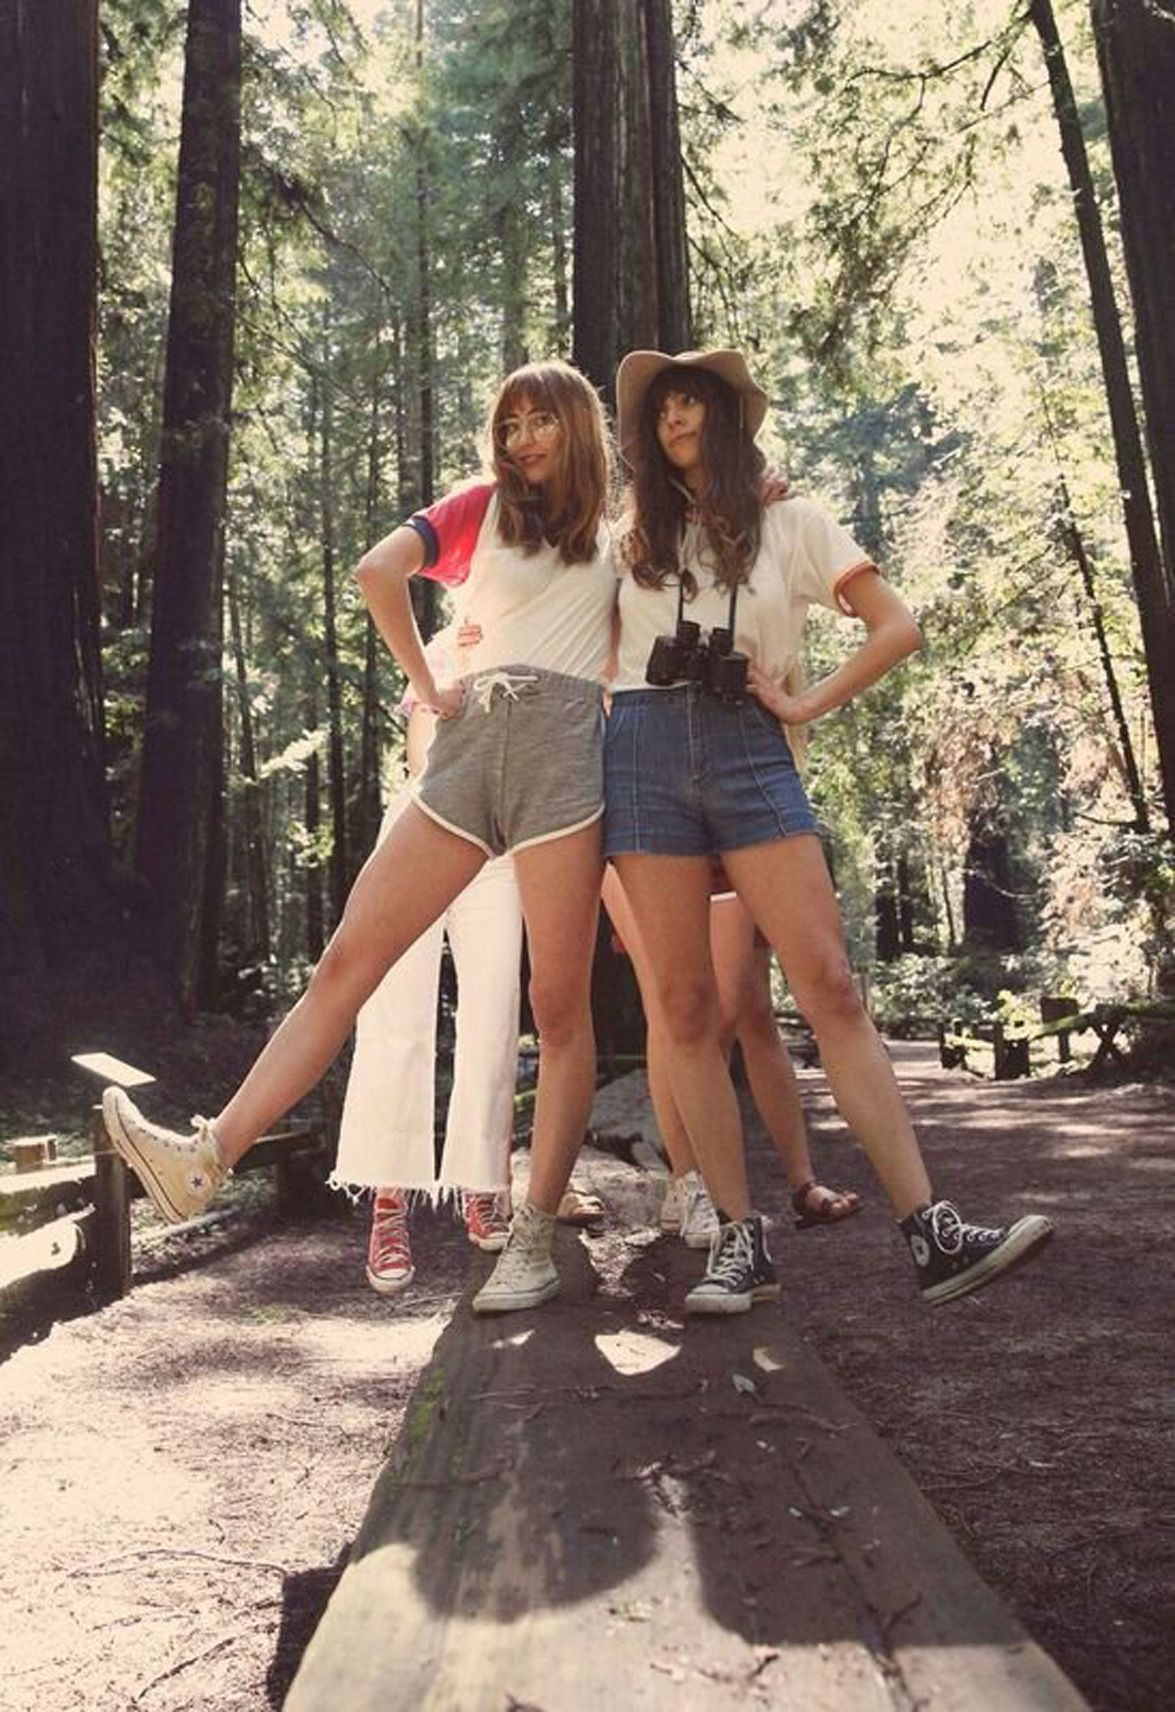 Camp Collection Rise and Shine Lookbook | Camping ...